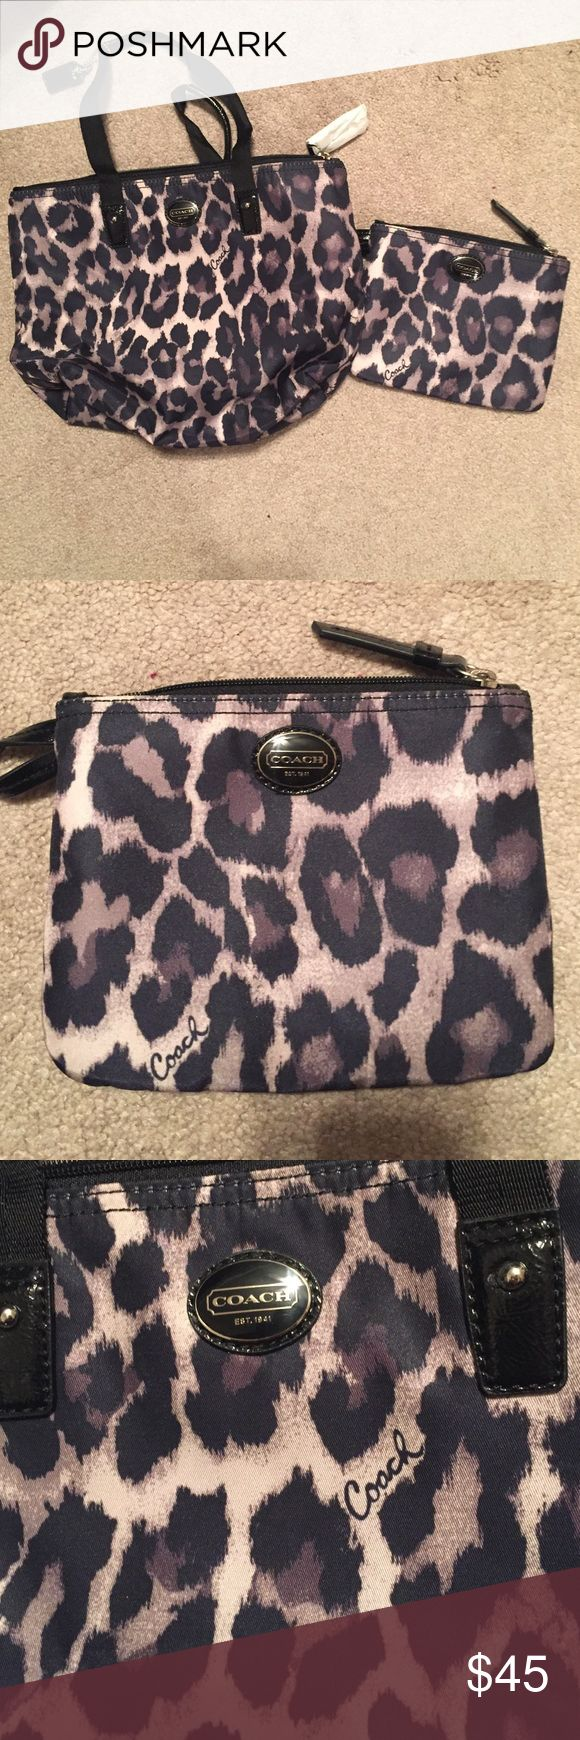 "NWT Coach Animal Print Bag and Matching Clutch Set includes a small Coach Tote and matching Coach clutch/make up bag. The bag is 9"" x 12"" and the matching Wristlet is 5.5"" x 7"". NWT smoke and pet free home ❤ Coach Bags Totes"